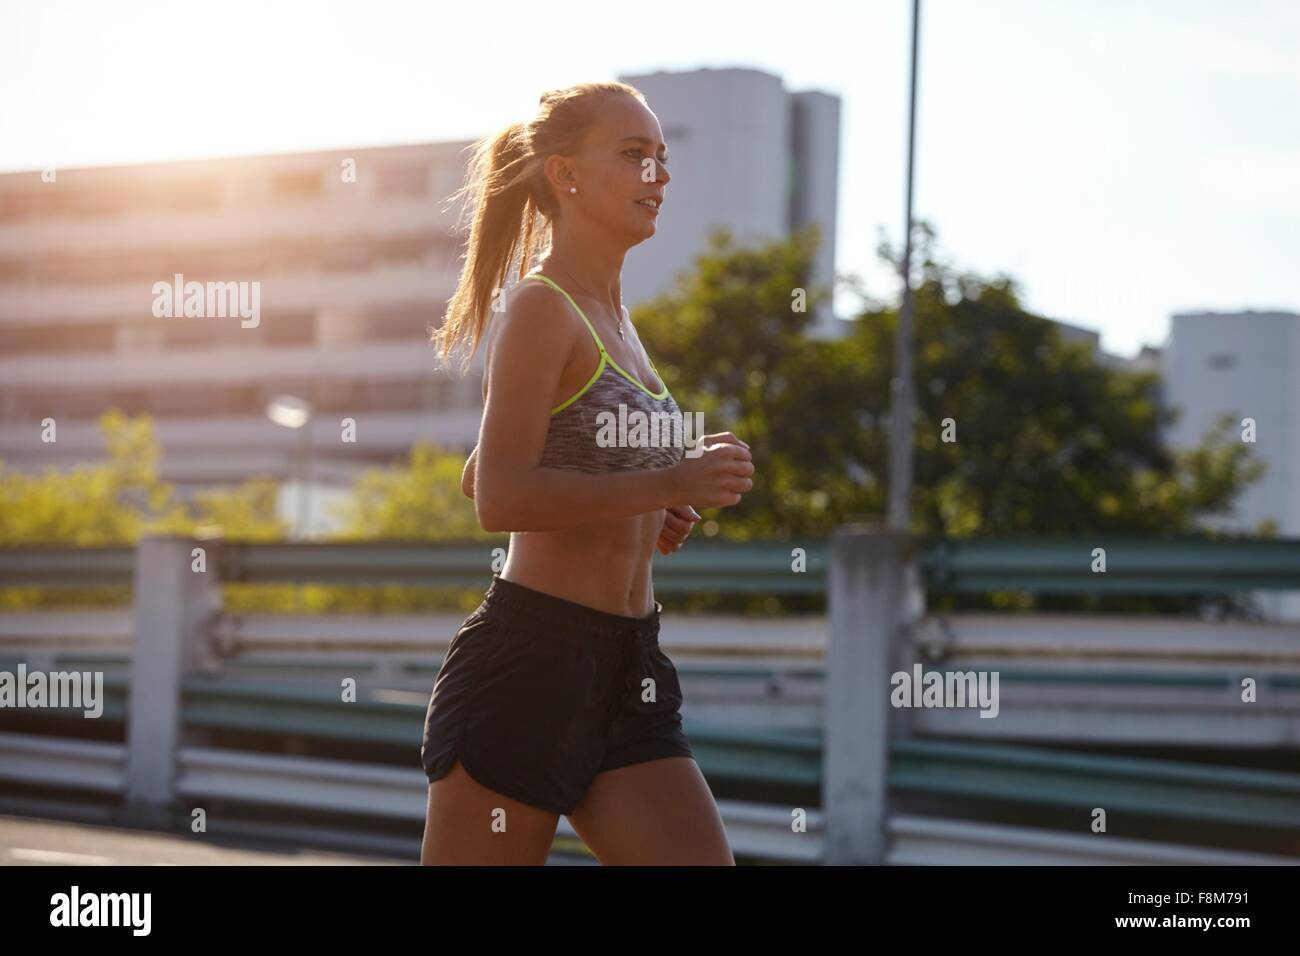 Young female runner running on urban rooftop - Stock Image